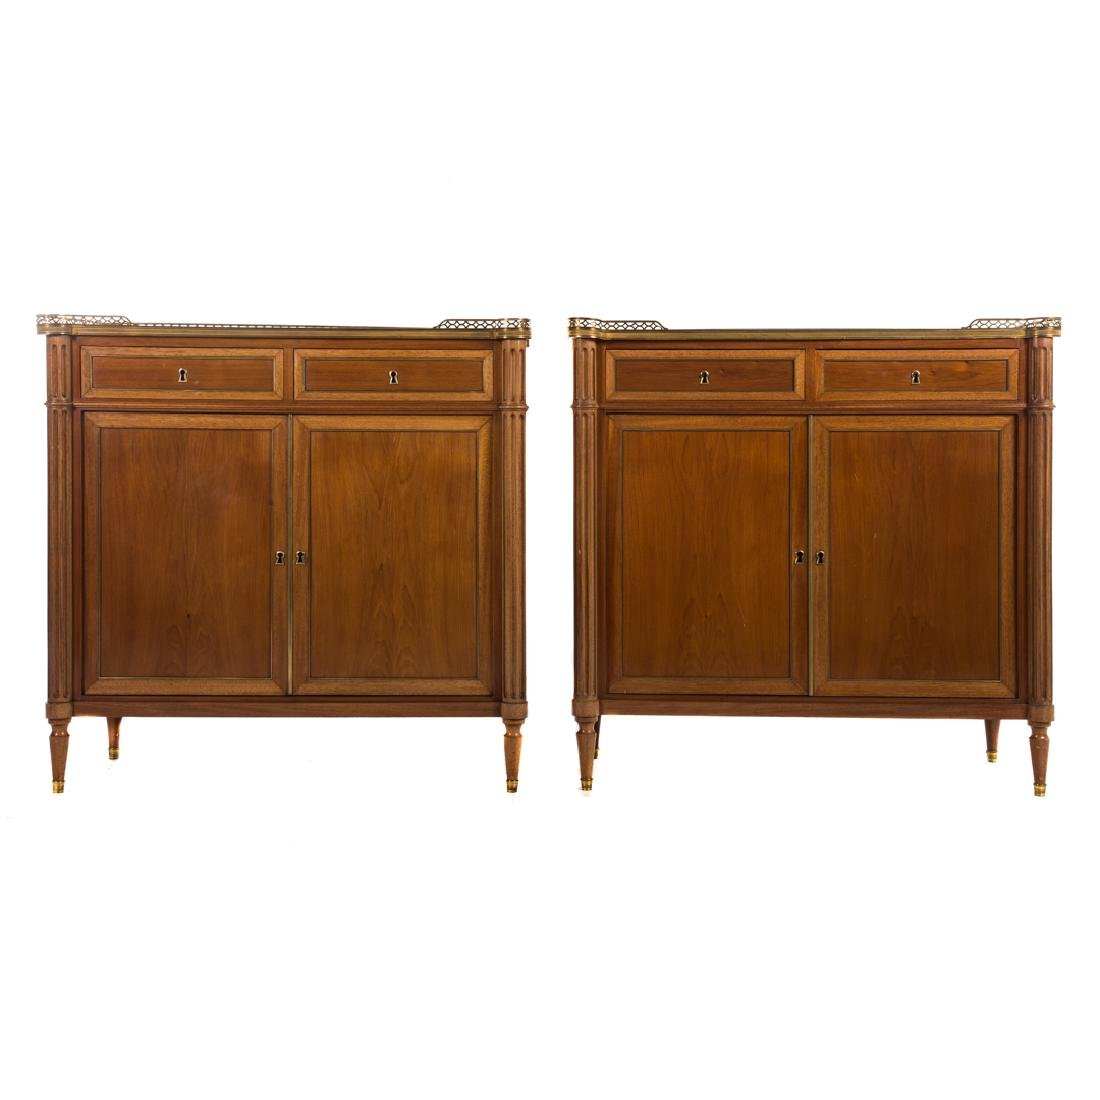 Pr Louis XVI style mahogany & marble top cabinets